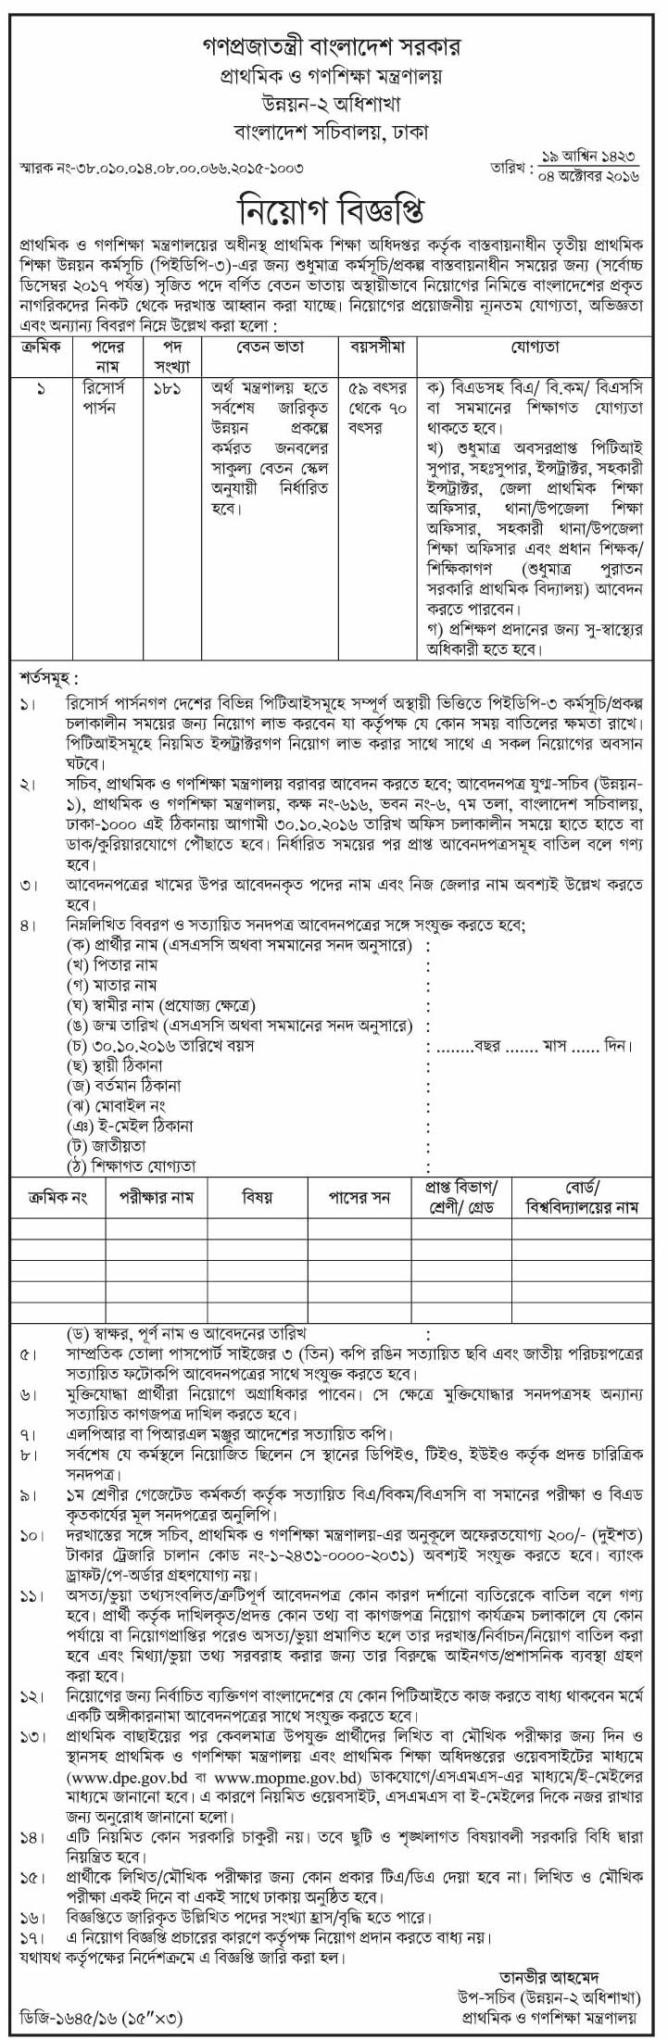 DPE 181 Posts Govt Job Circular 2016